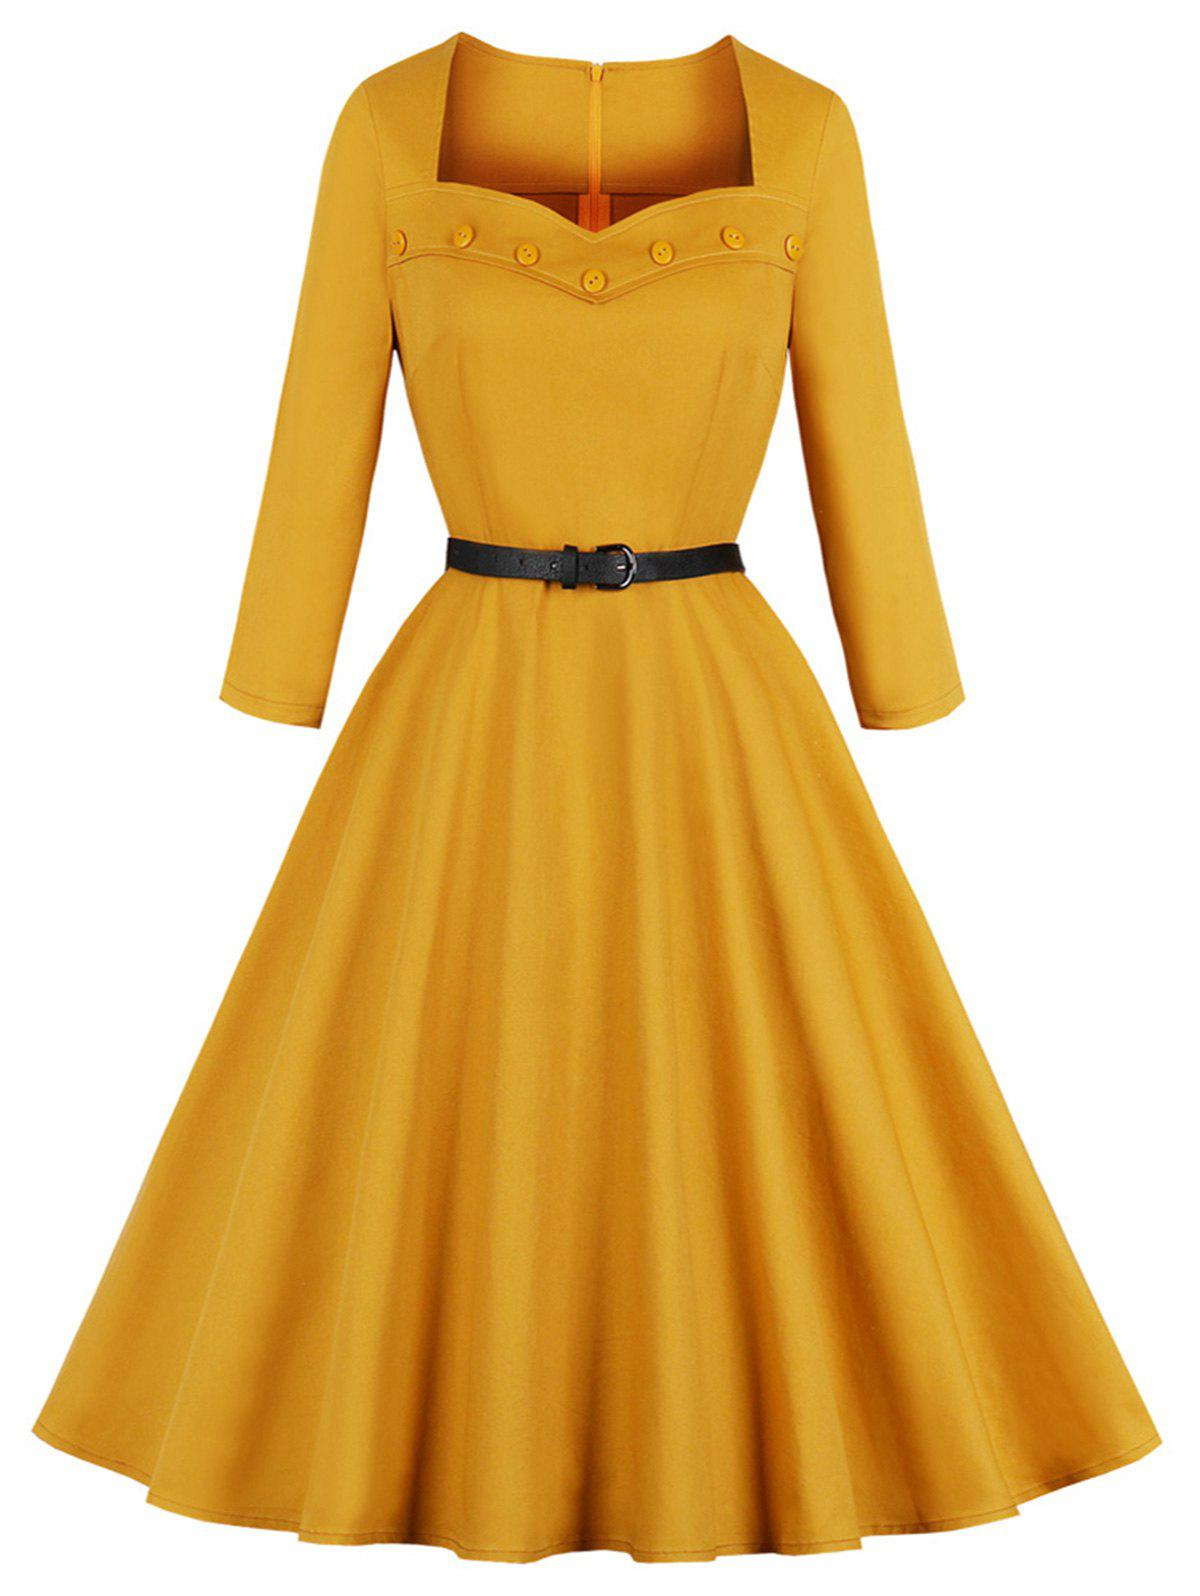 Affordable Vintage Sweetheart Neck Buttons Fit and Flare Dress